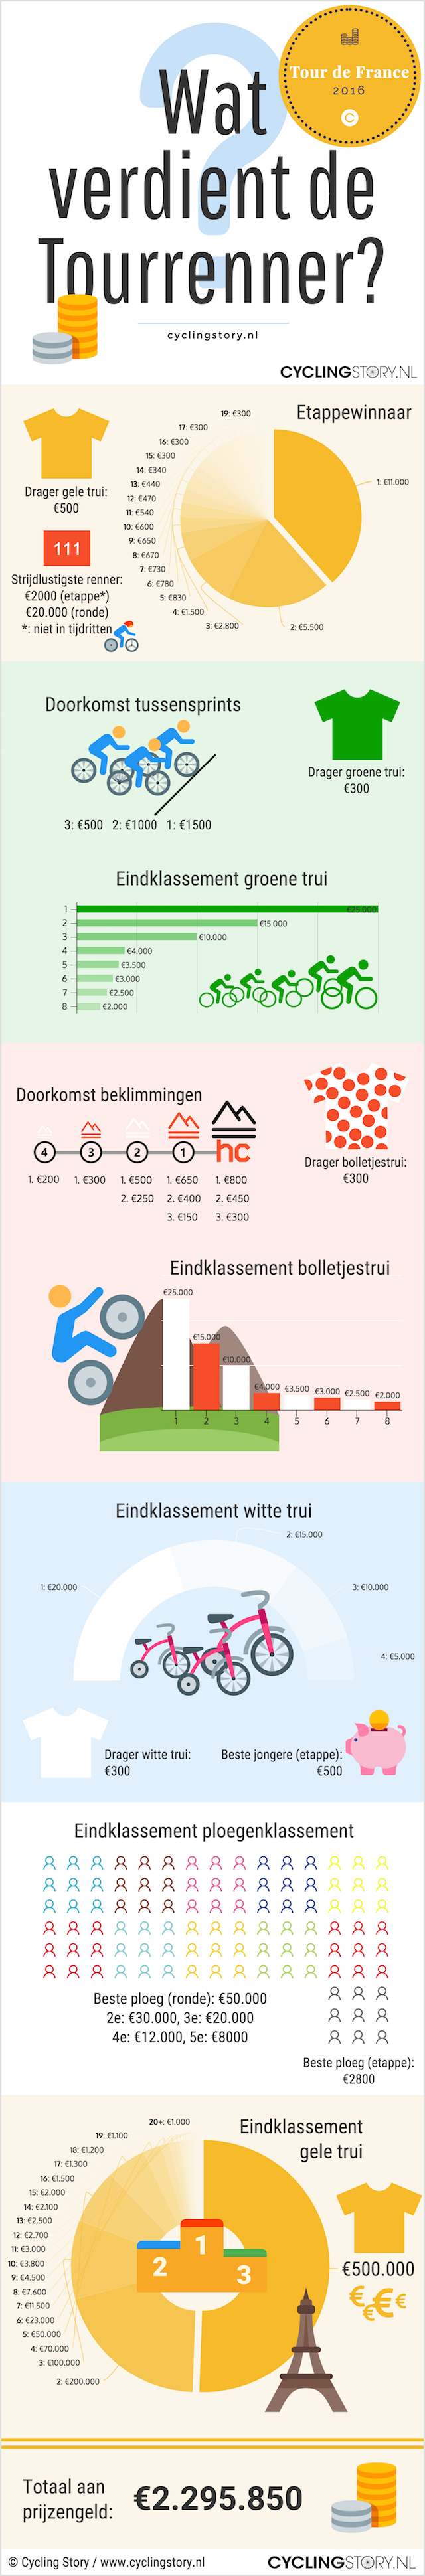 Infographic: Wat verdient een wielrenner in de Tour de France (© Cycling Story / cyclingstory.nl)